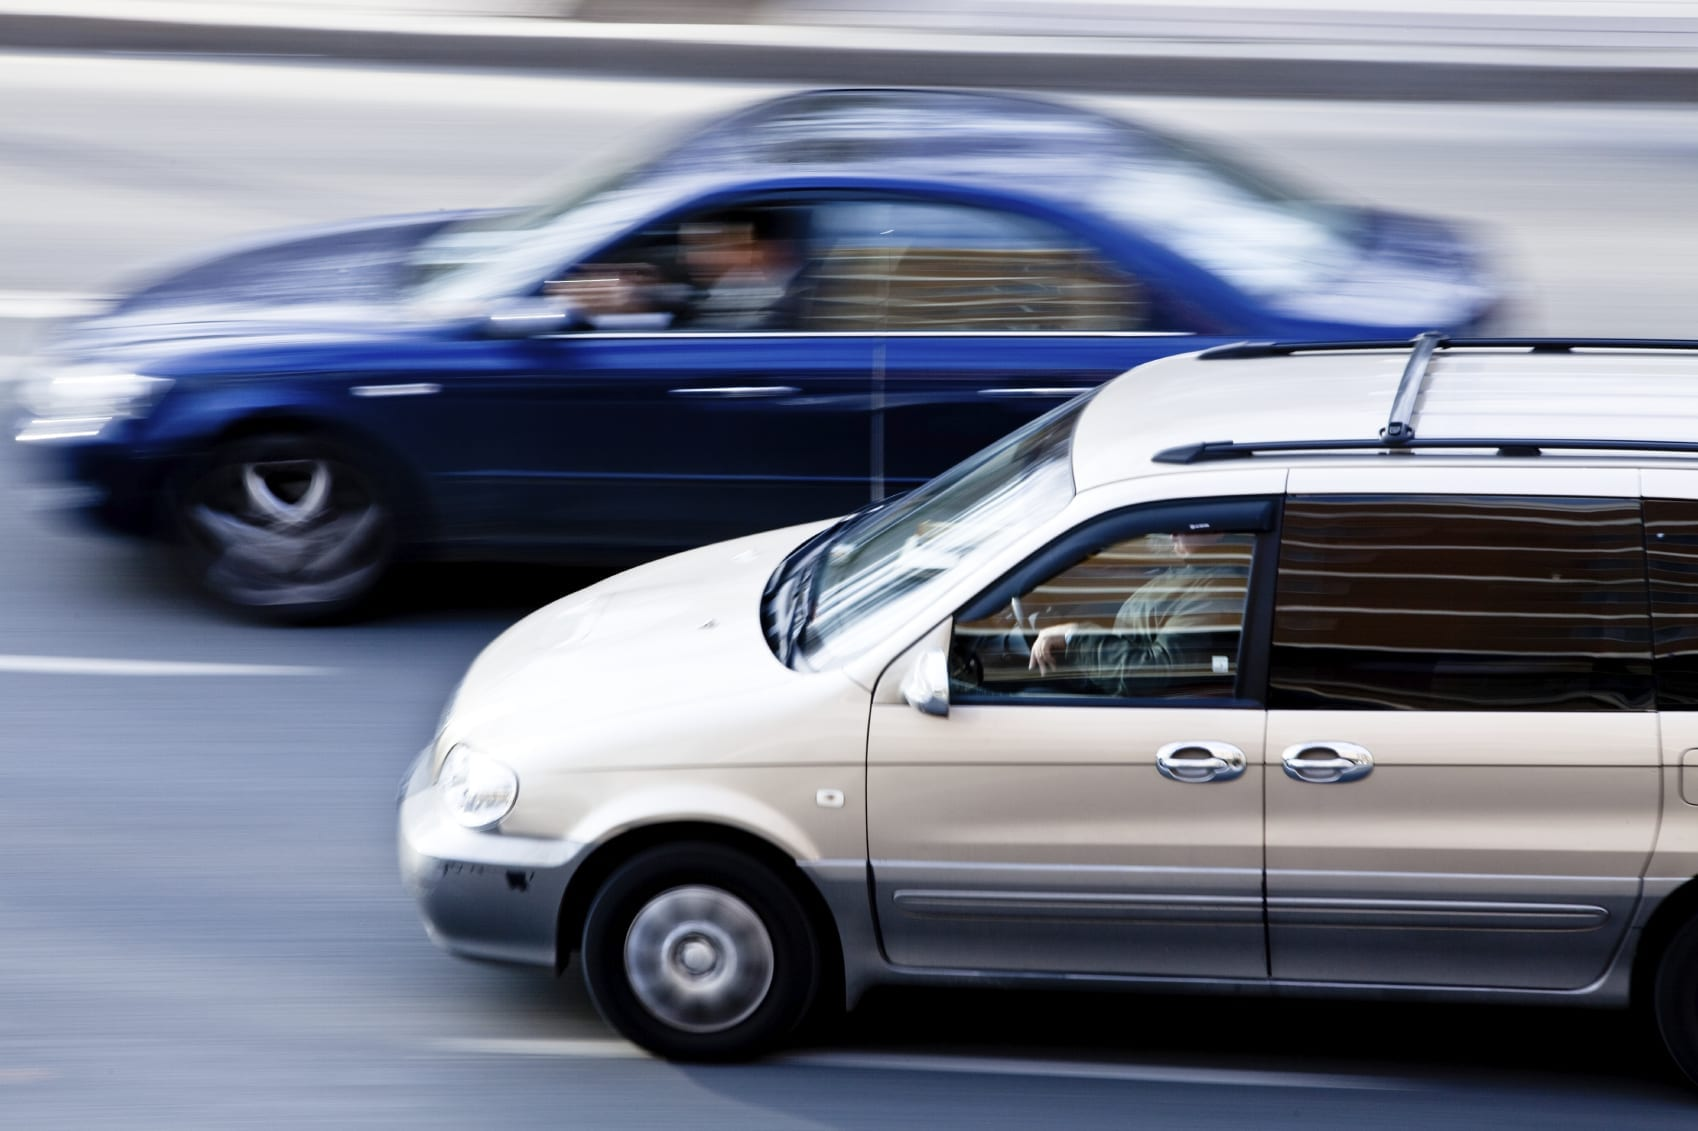 Minivan Passing A Blue Car On The Highway Stock Photo